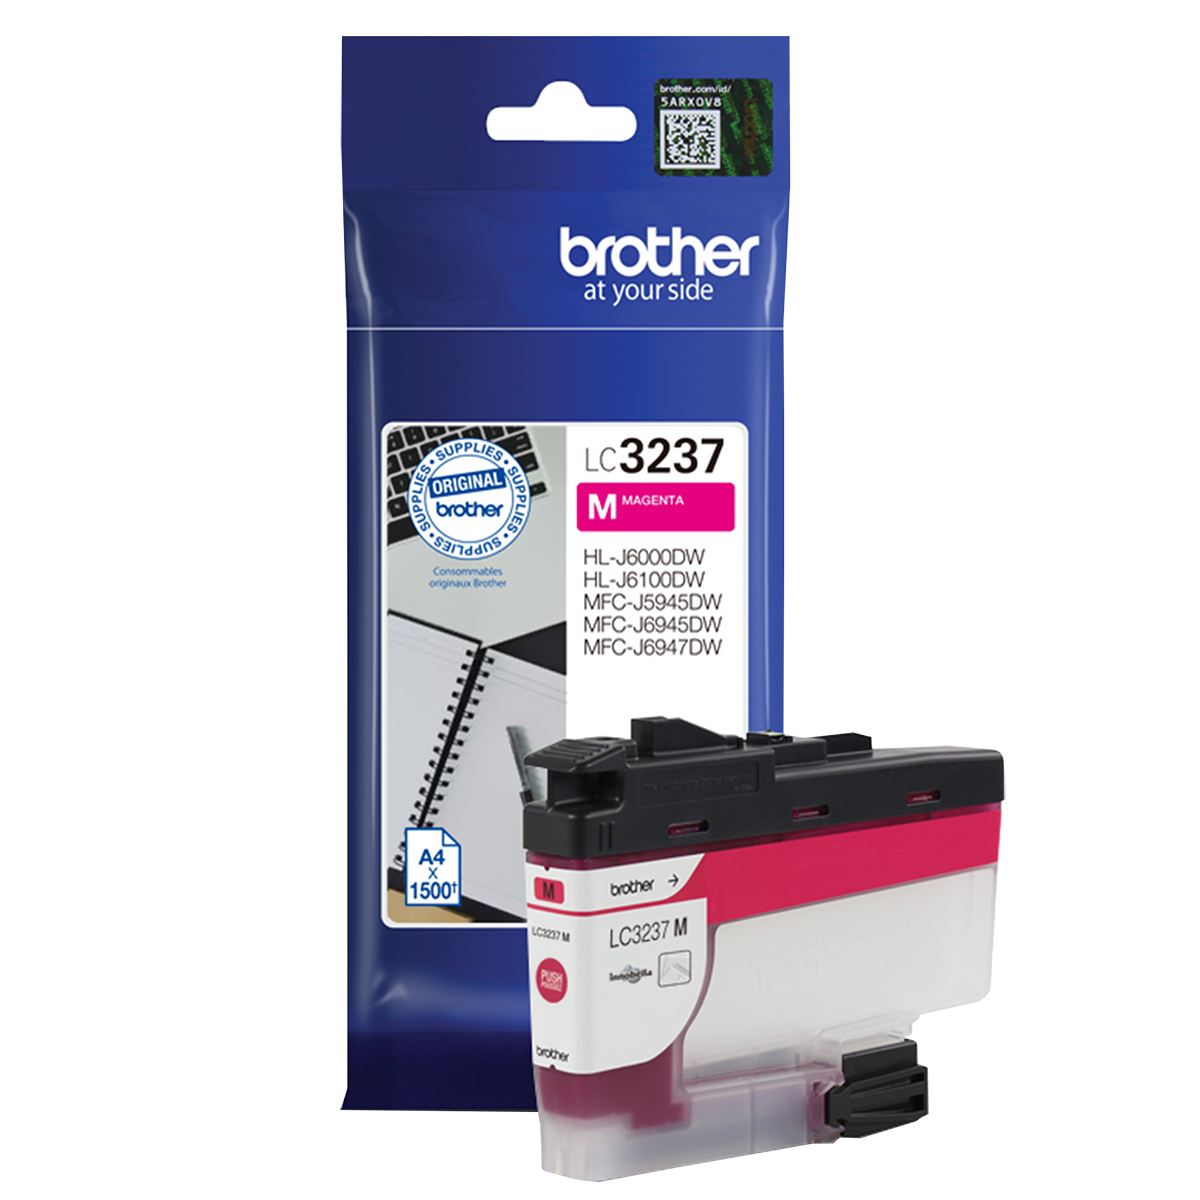 Brother LC3237M Magenta Inkjet Cartridge